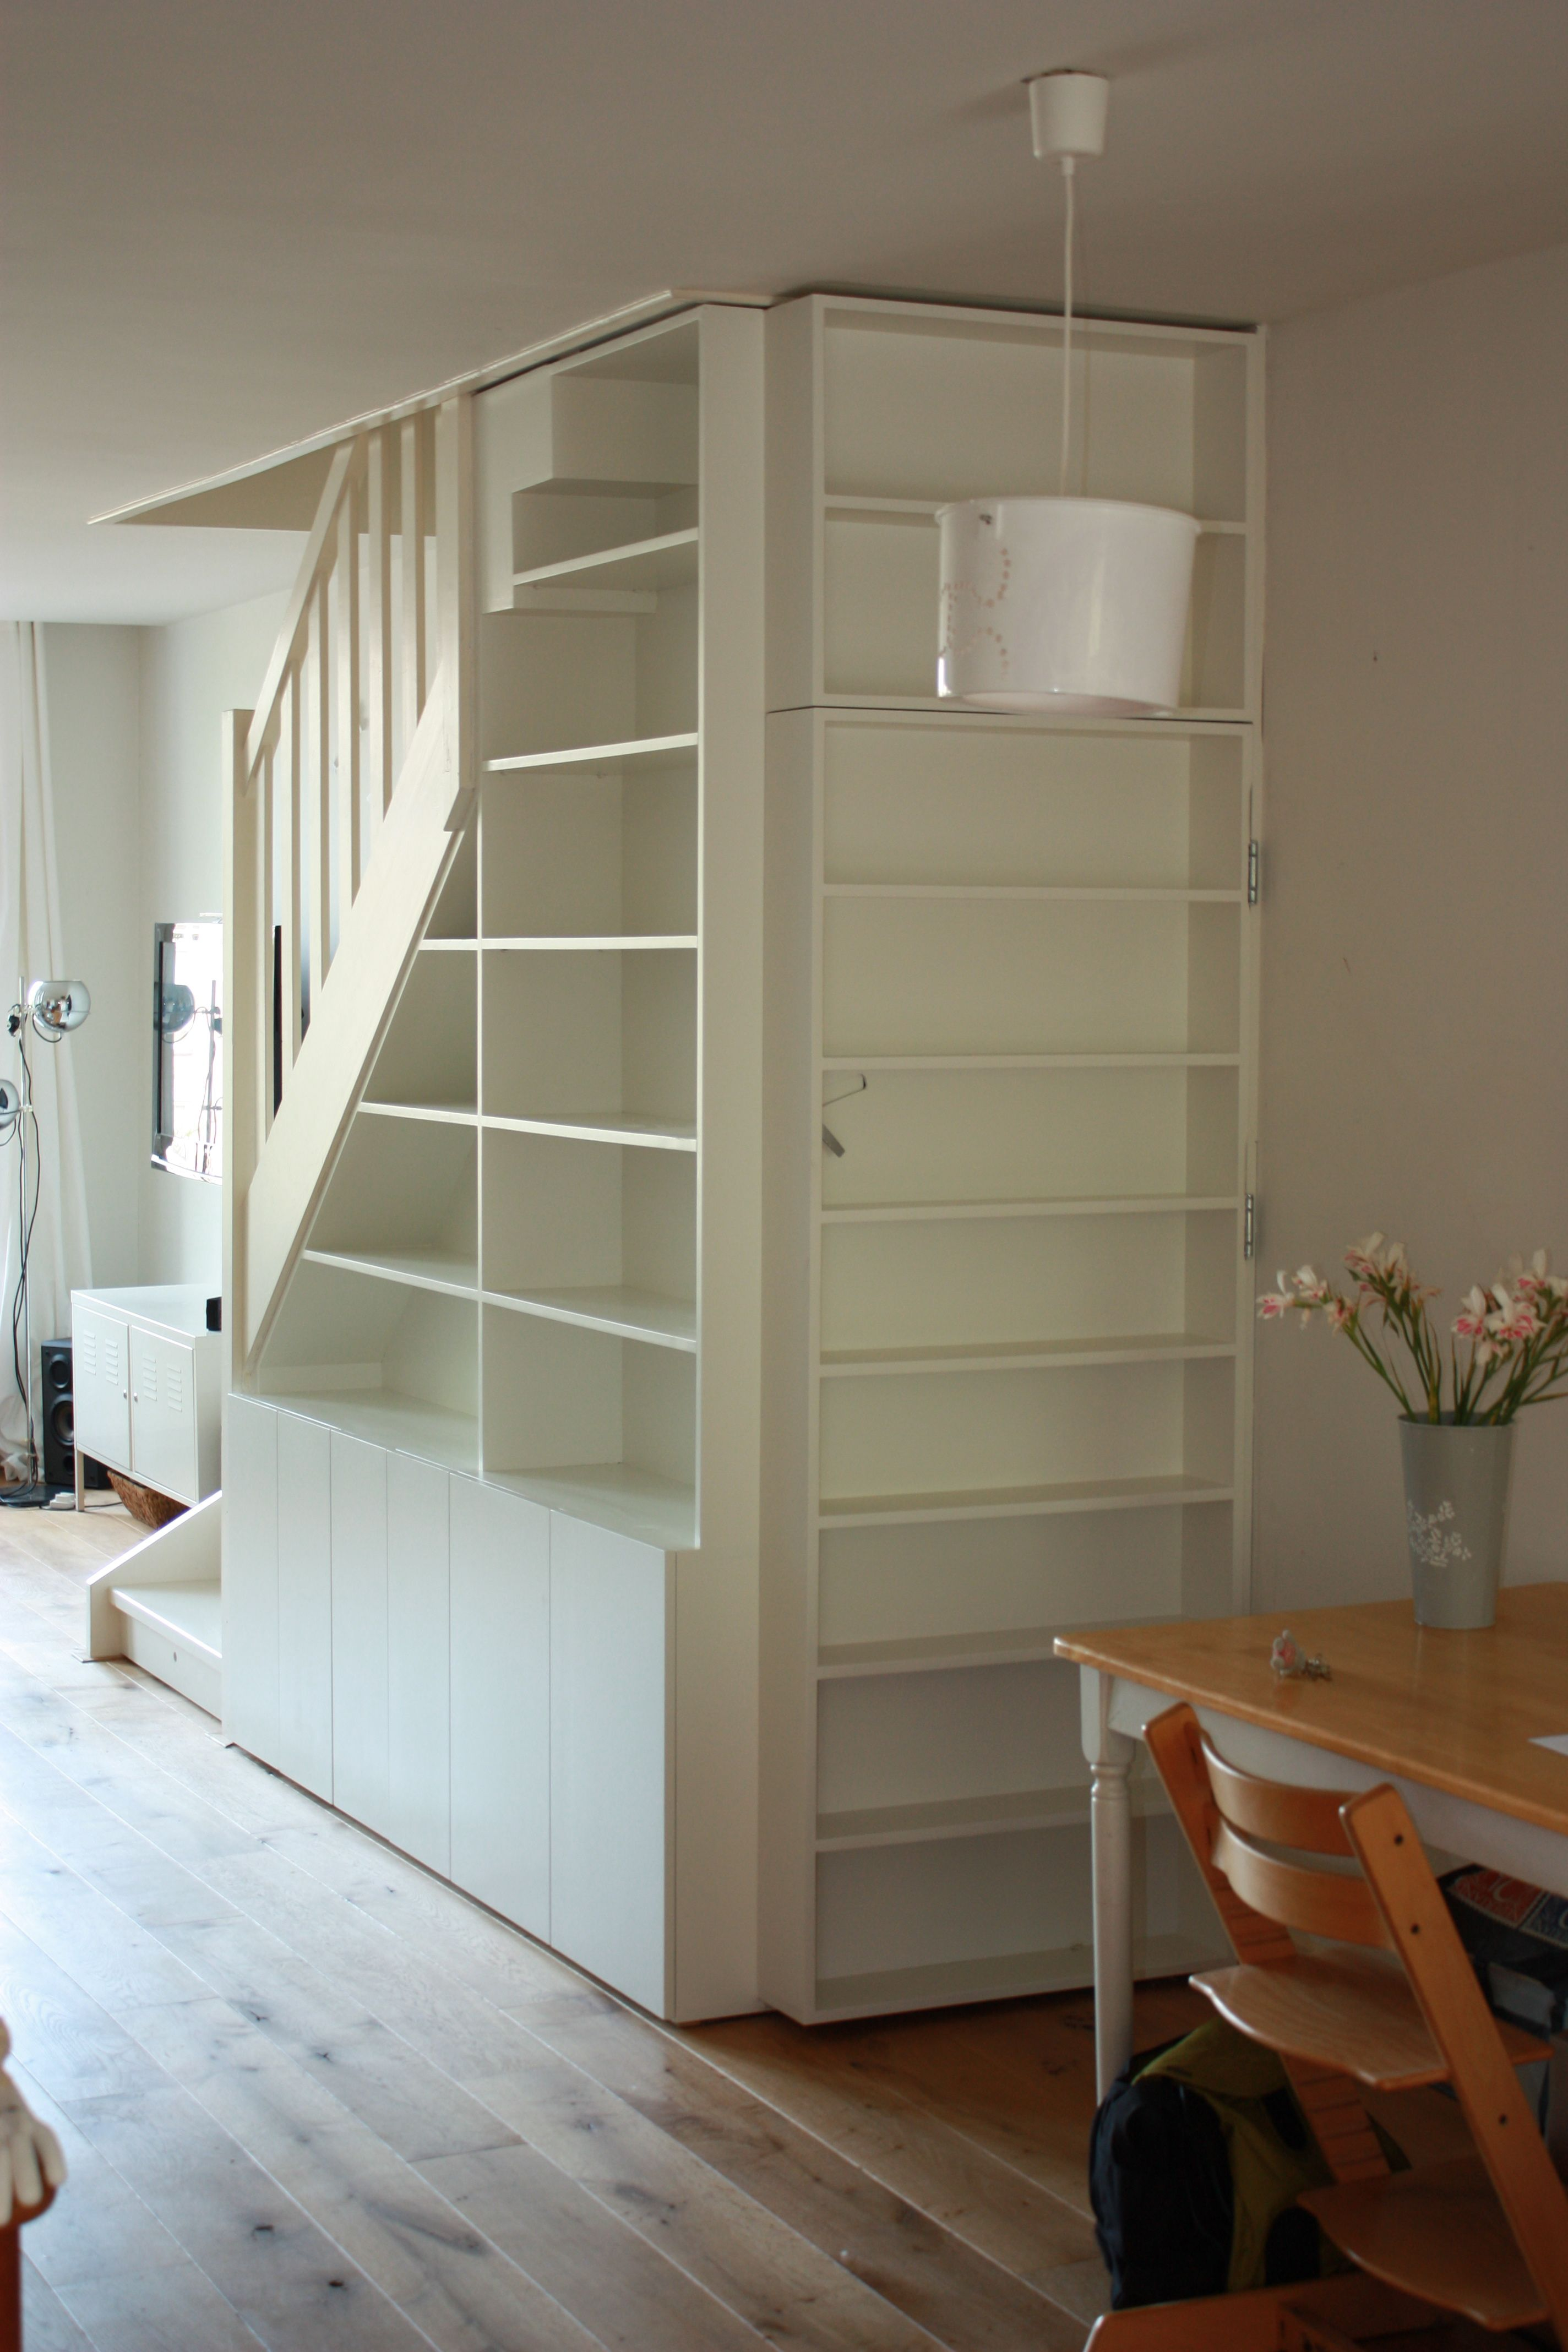 Trapkast | Woonkamer | Pinterest | Staircases, House and Organizing